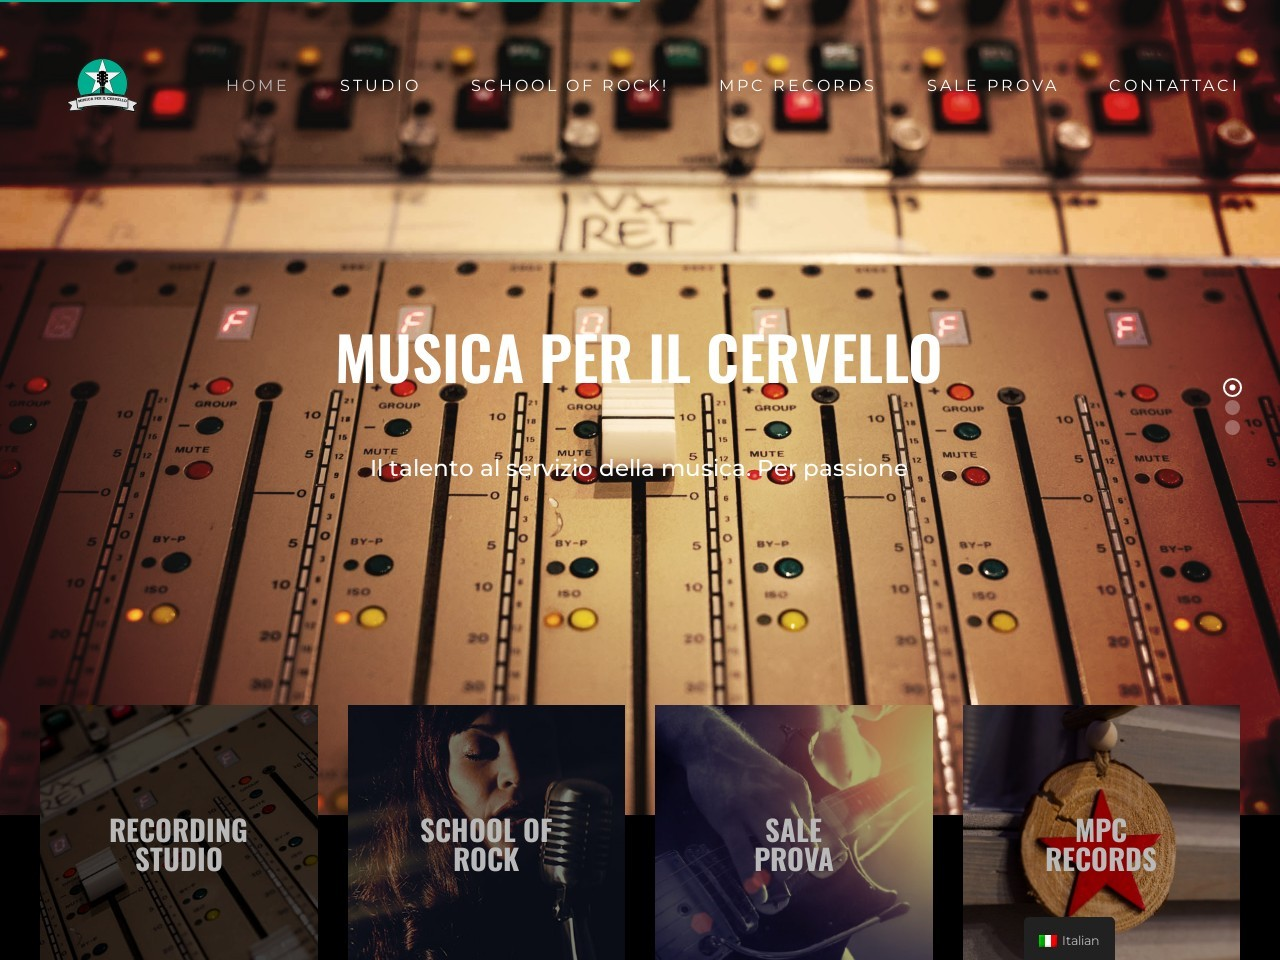 http://www.musicaperilcervello.it